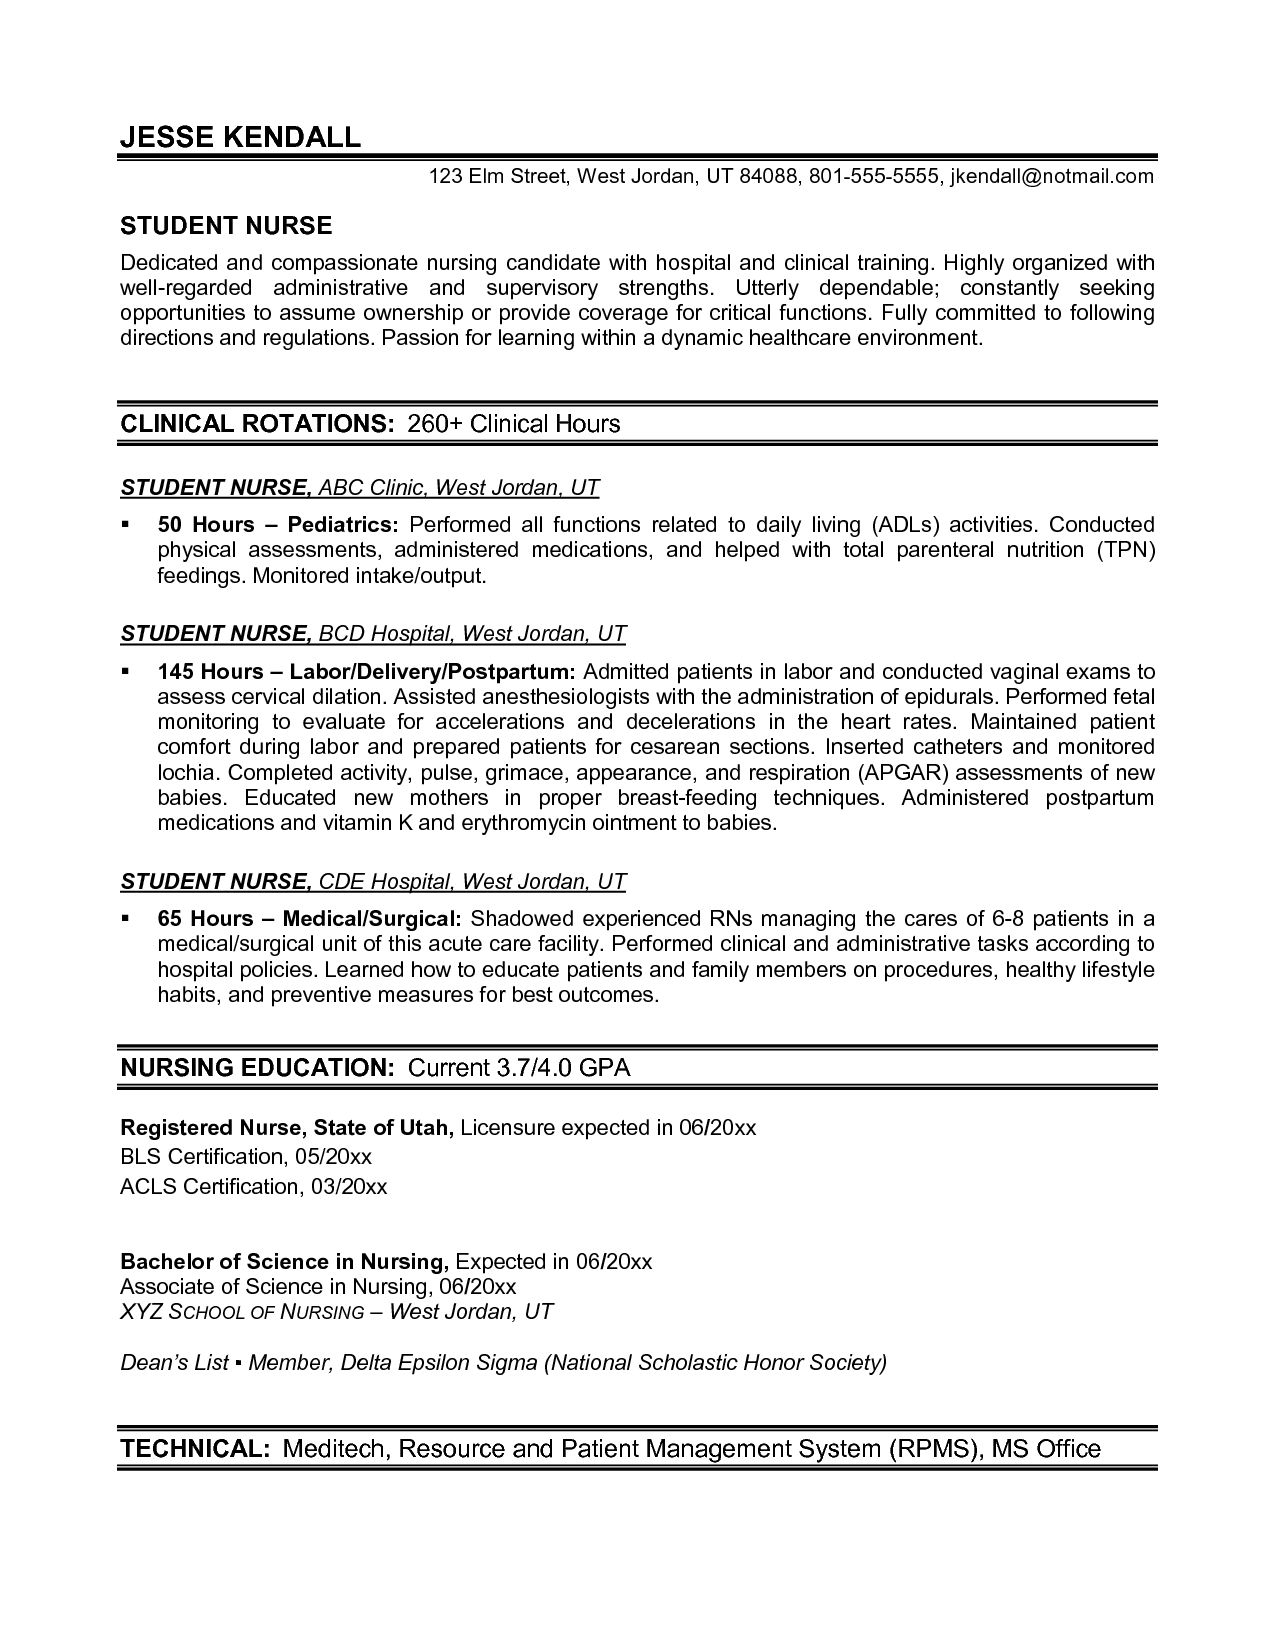 a good resume example for a professional organizer